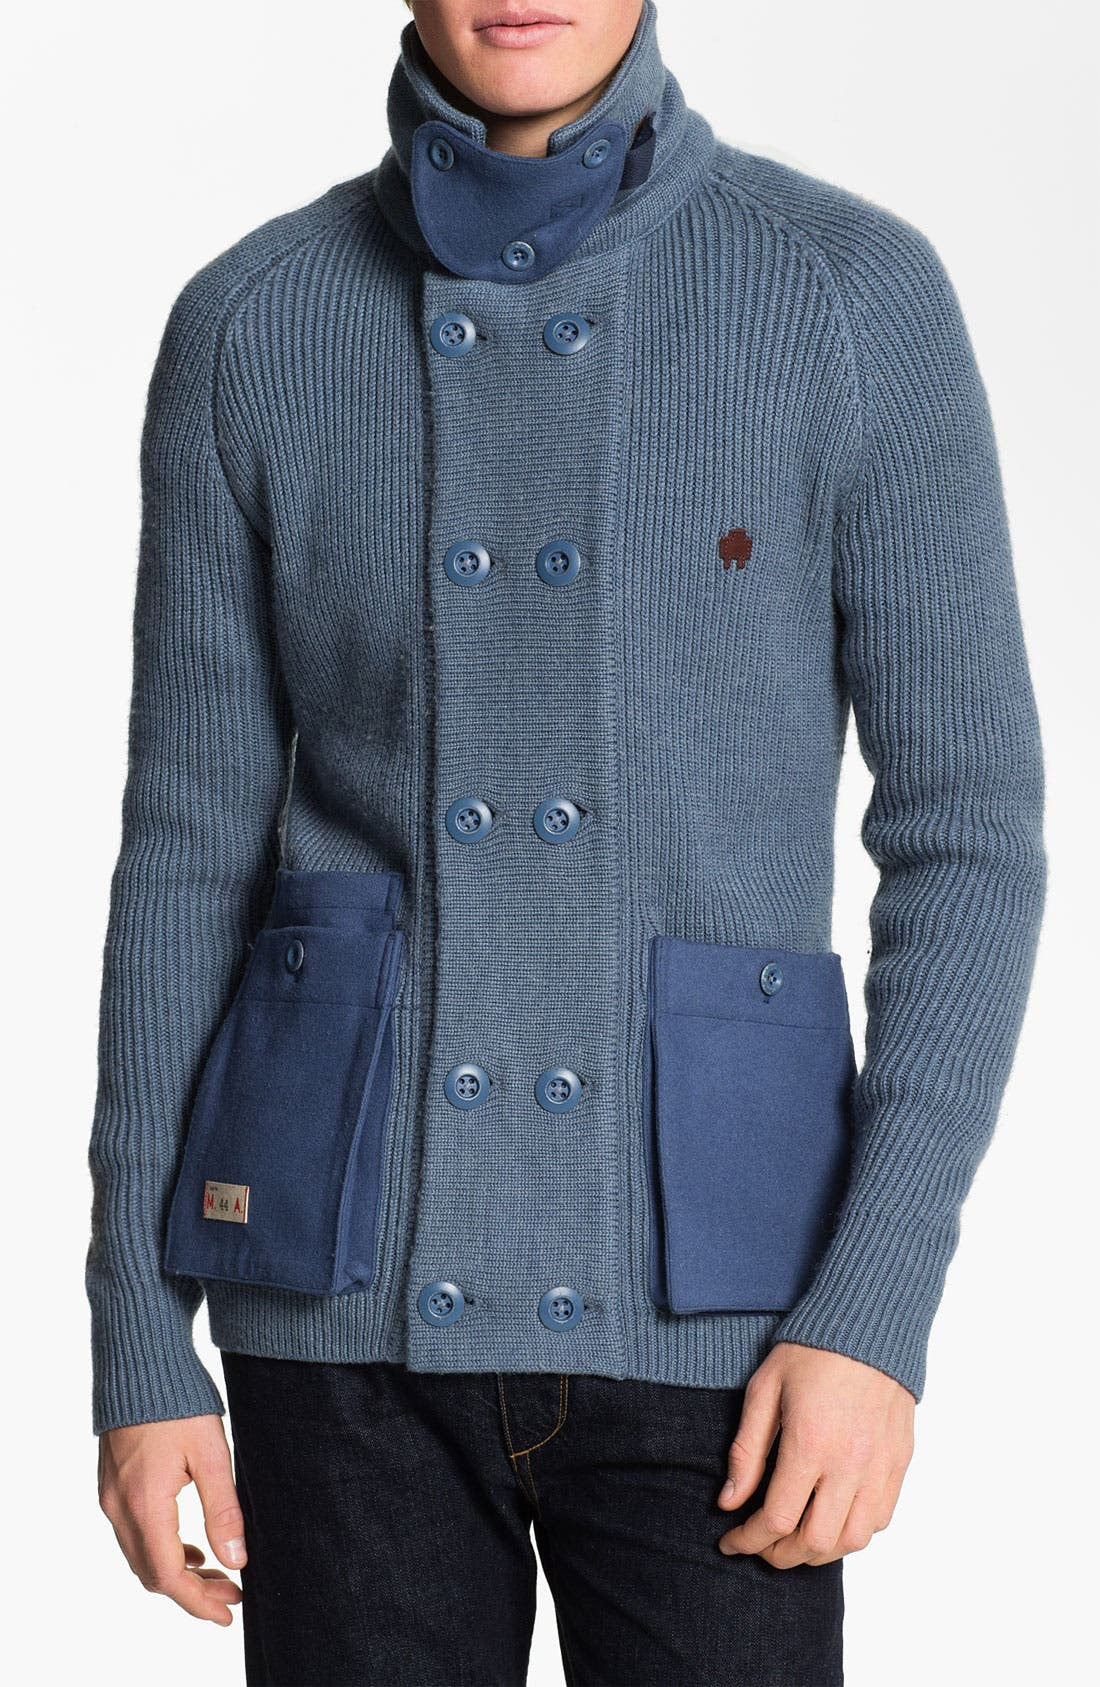 Main Image - Marshall Artist 'Officer's' Wool Blend Cardigan